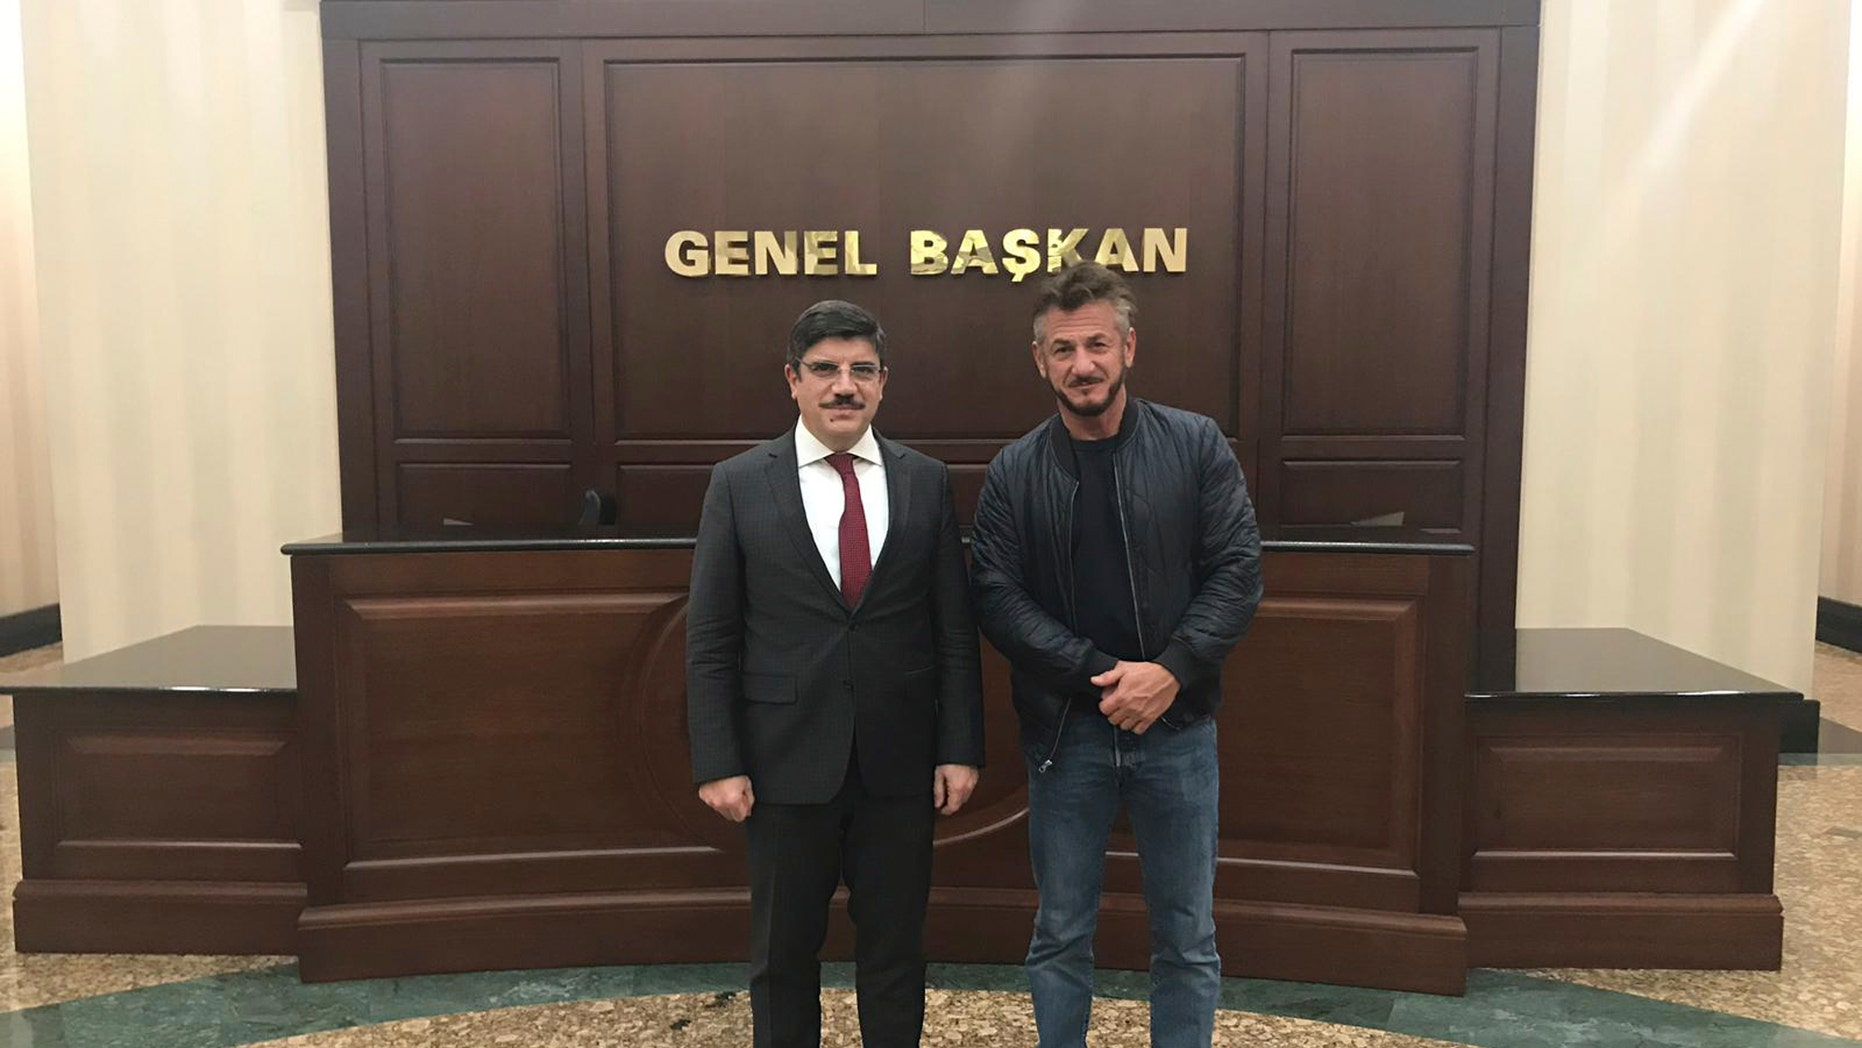 Yasin Aktay an adviser to Turkey's President Recep Tayyip Erdogan with US actor Sean Penn, in Ankara, Turkey. Penn is in Turkey working on a documentary about the slaying of journalist Jamal Khashoggi at the Saudi consulate on Oct. 2 in Istanbul.